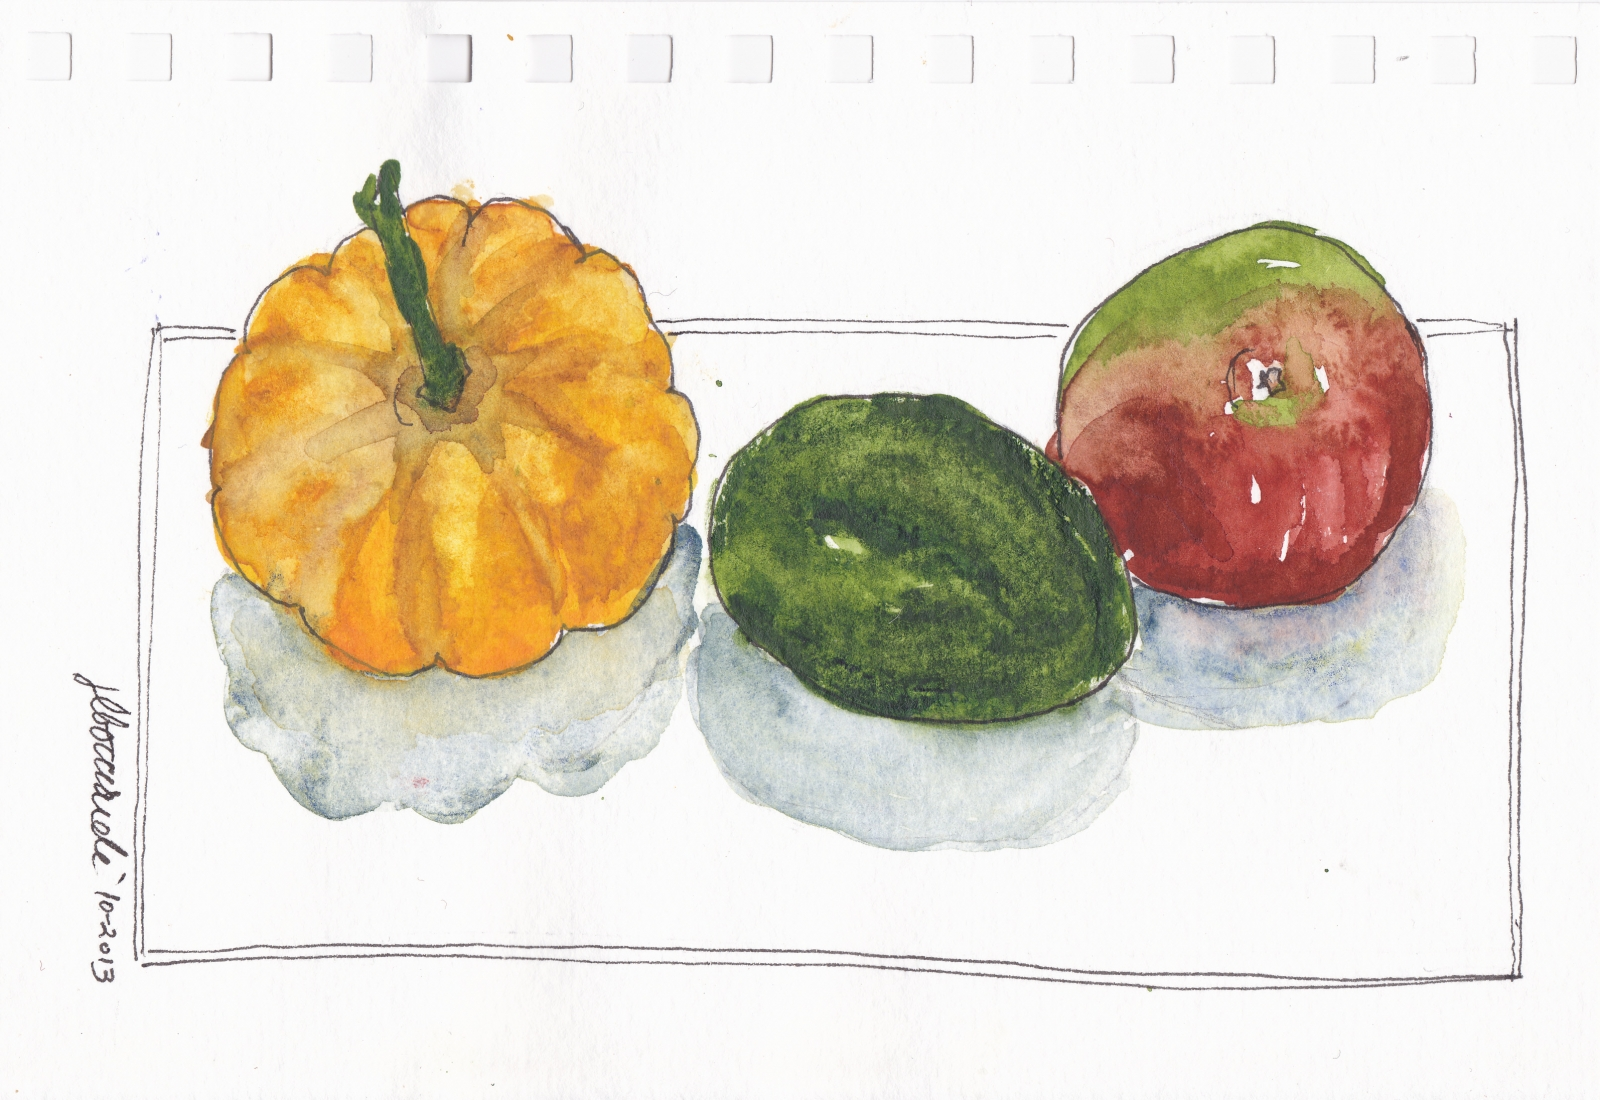 vegetable and fruit sketch and watercolor by Janet Bocciardi